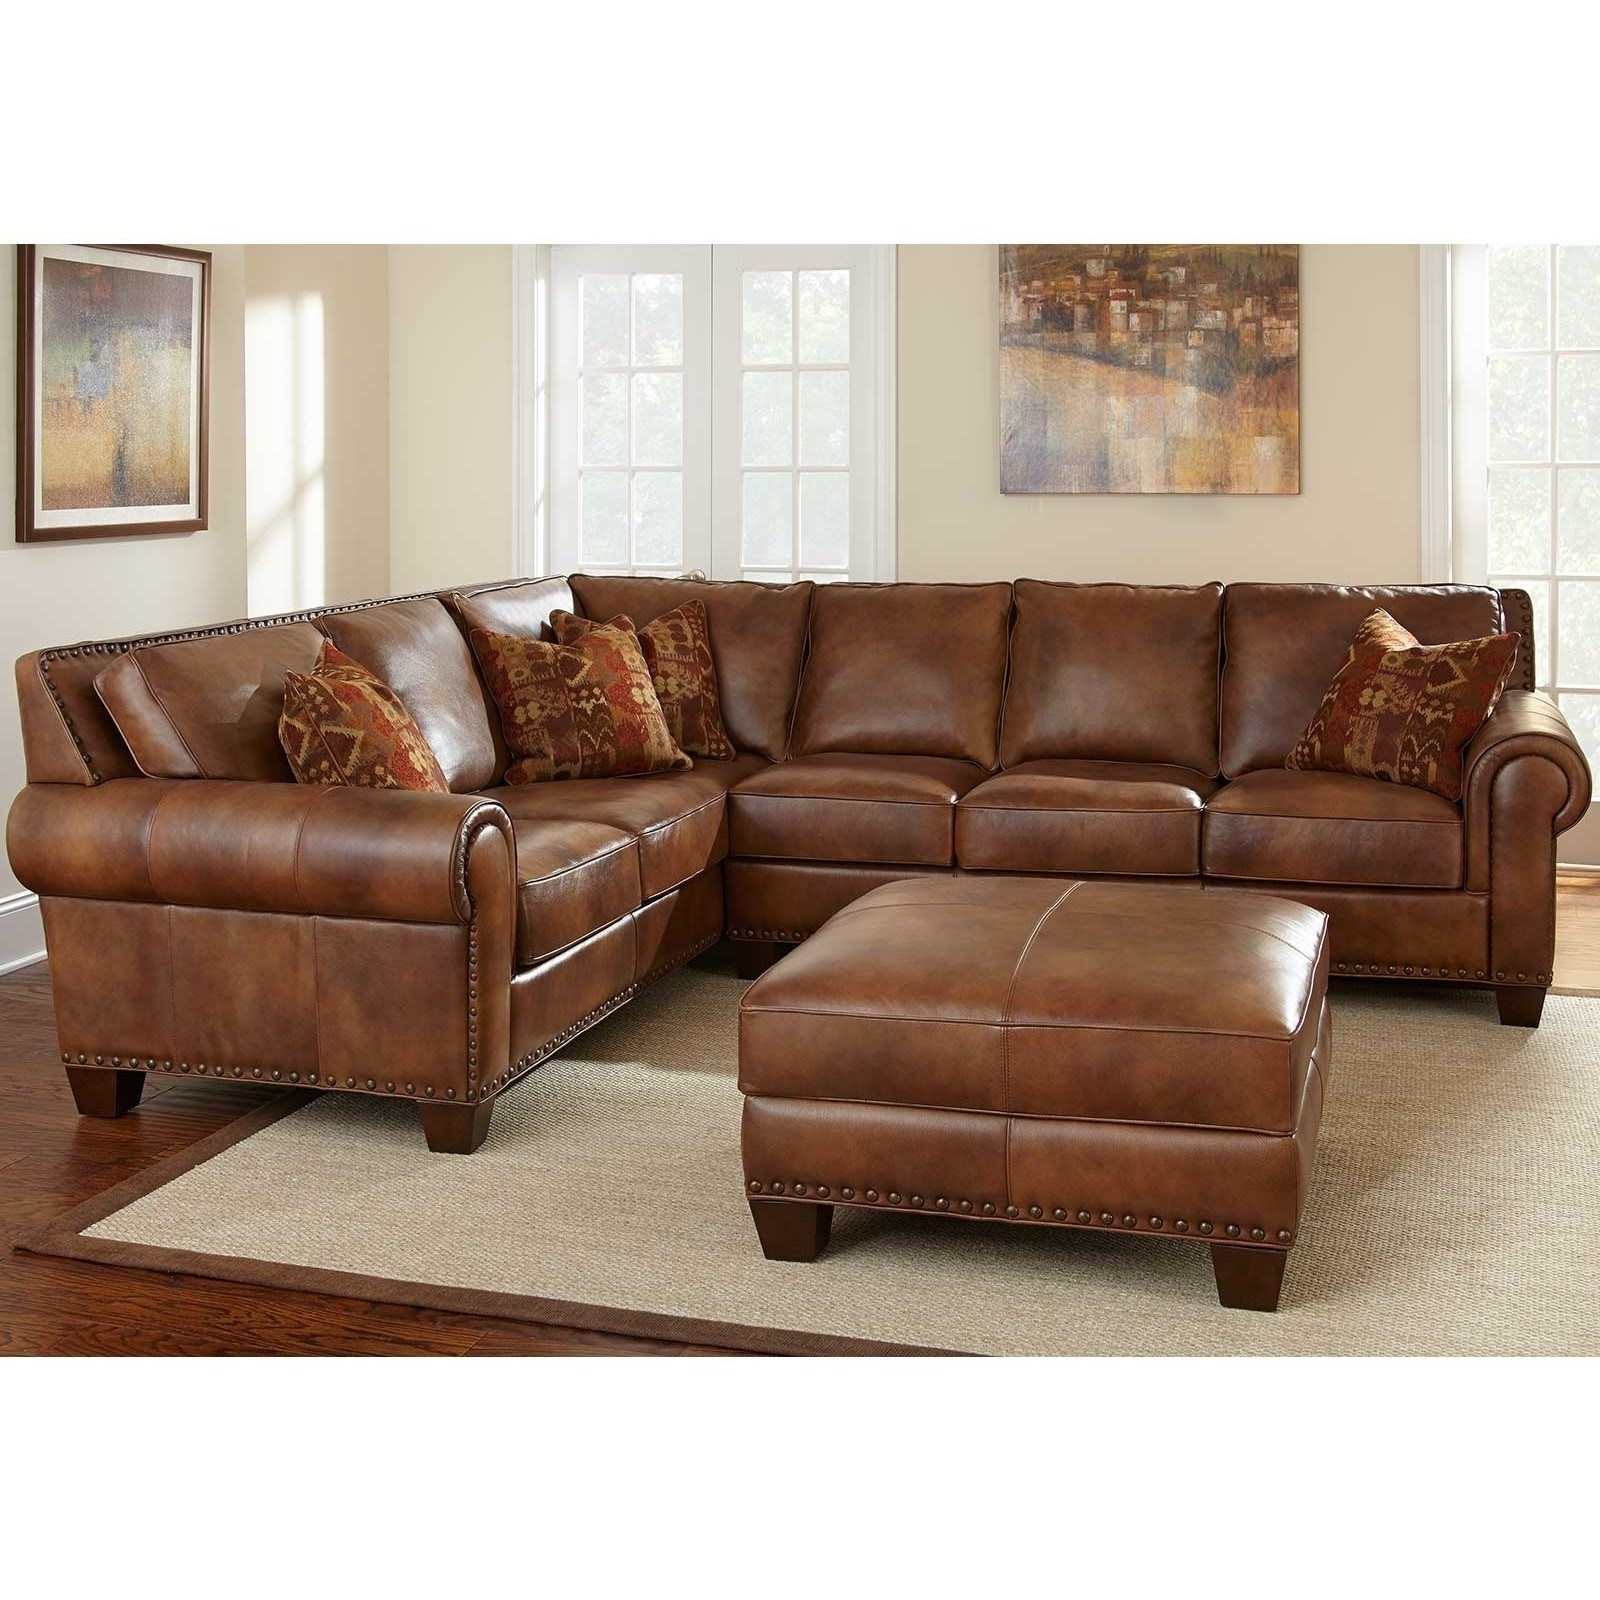 Famous White Leather Sectional Sofa Macy's • Leather Sofa With Macys Leather Sofas (View 20 of 20)